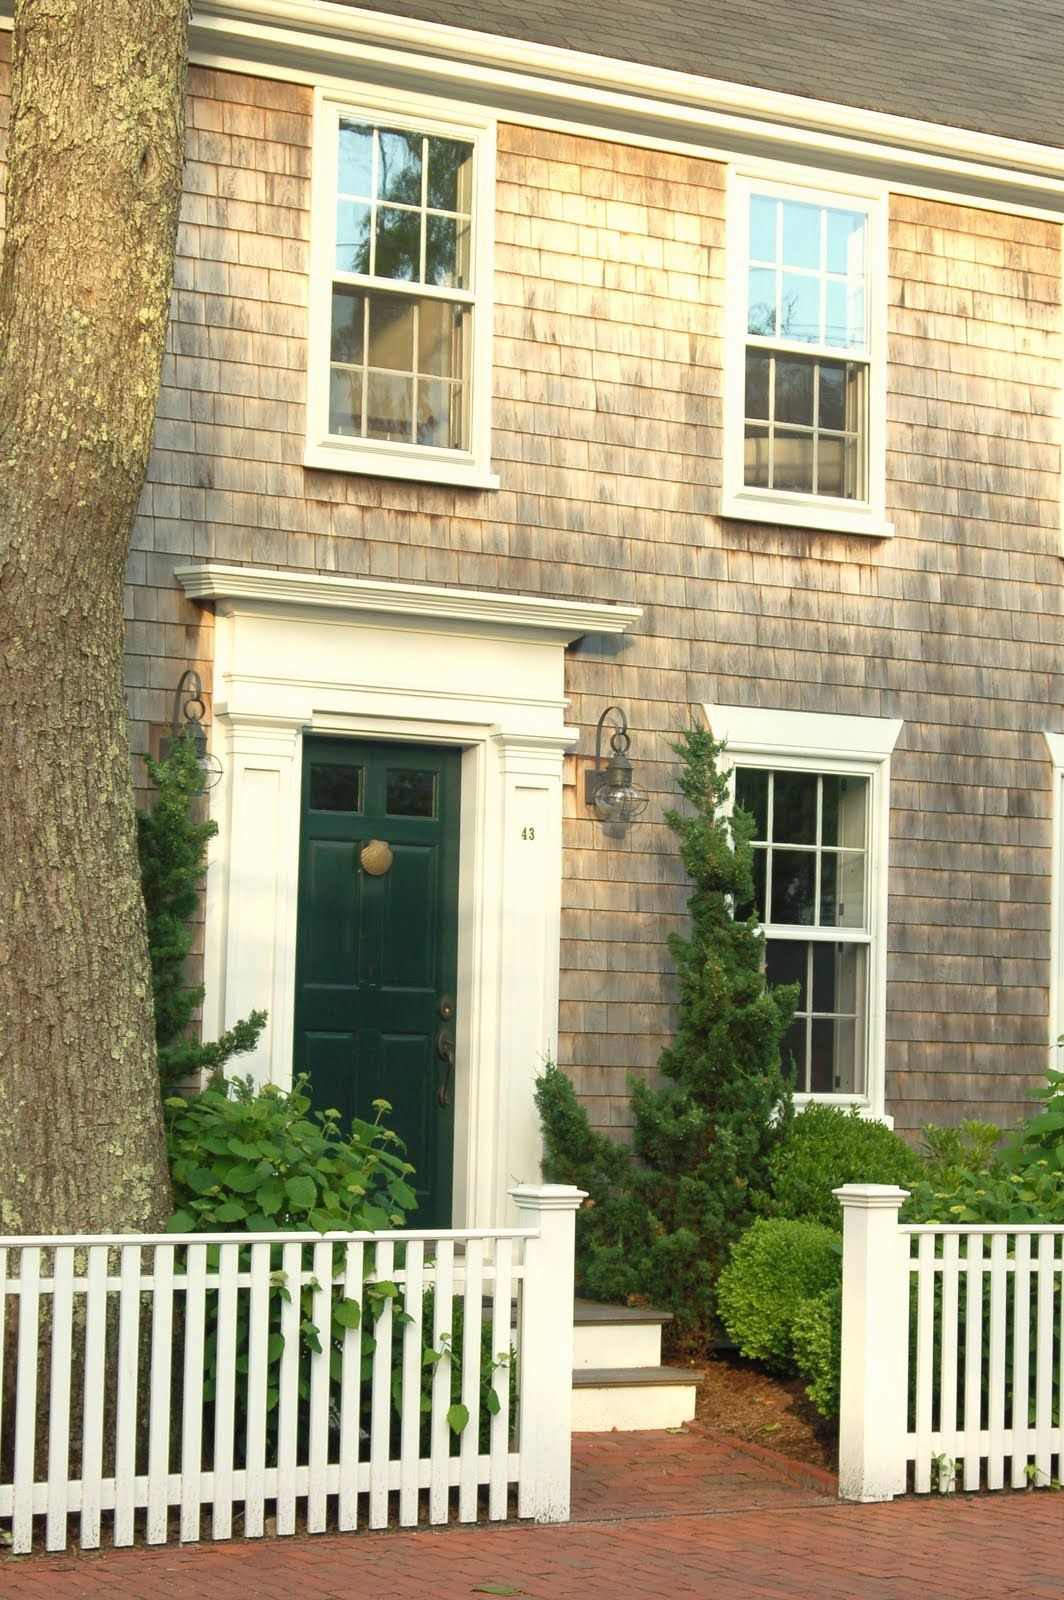 Nantucket shingle cottage quaint cottages pinterest for Nantucket shingles